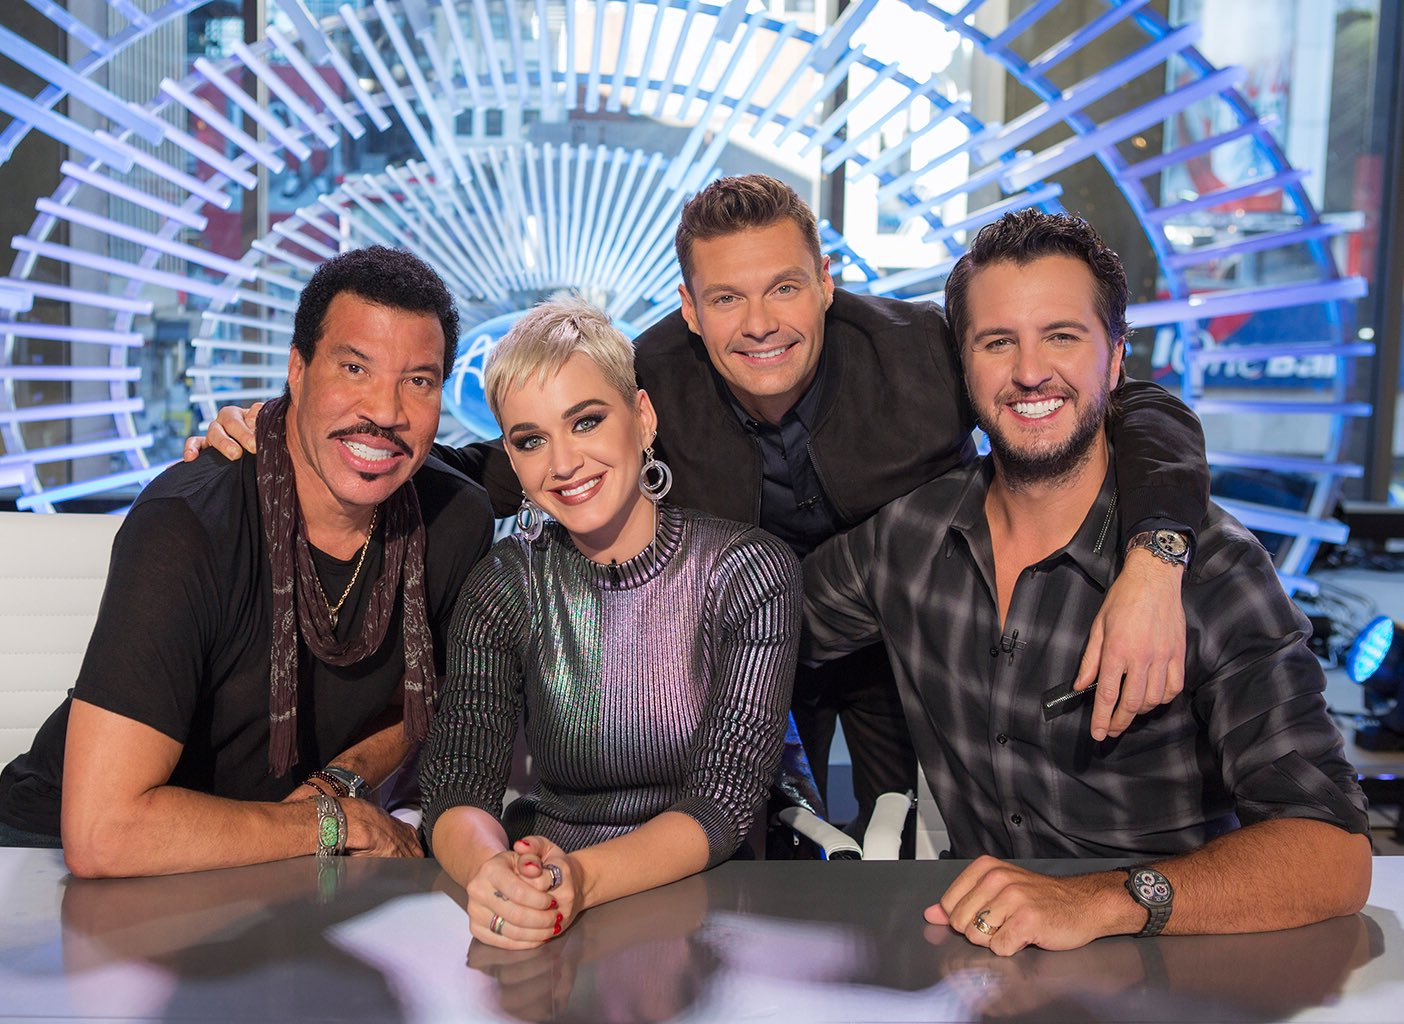 The countdown is on... T-minus one month until #AmericanIdol premieres March 11 on ABC! https://t.co/FW9JSFTZLN